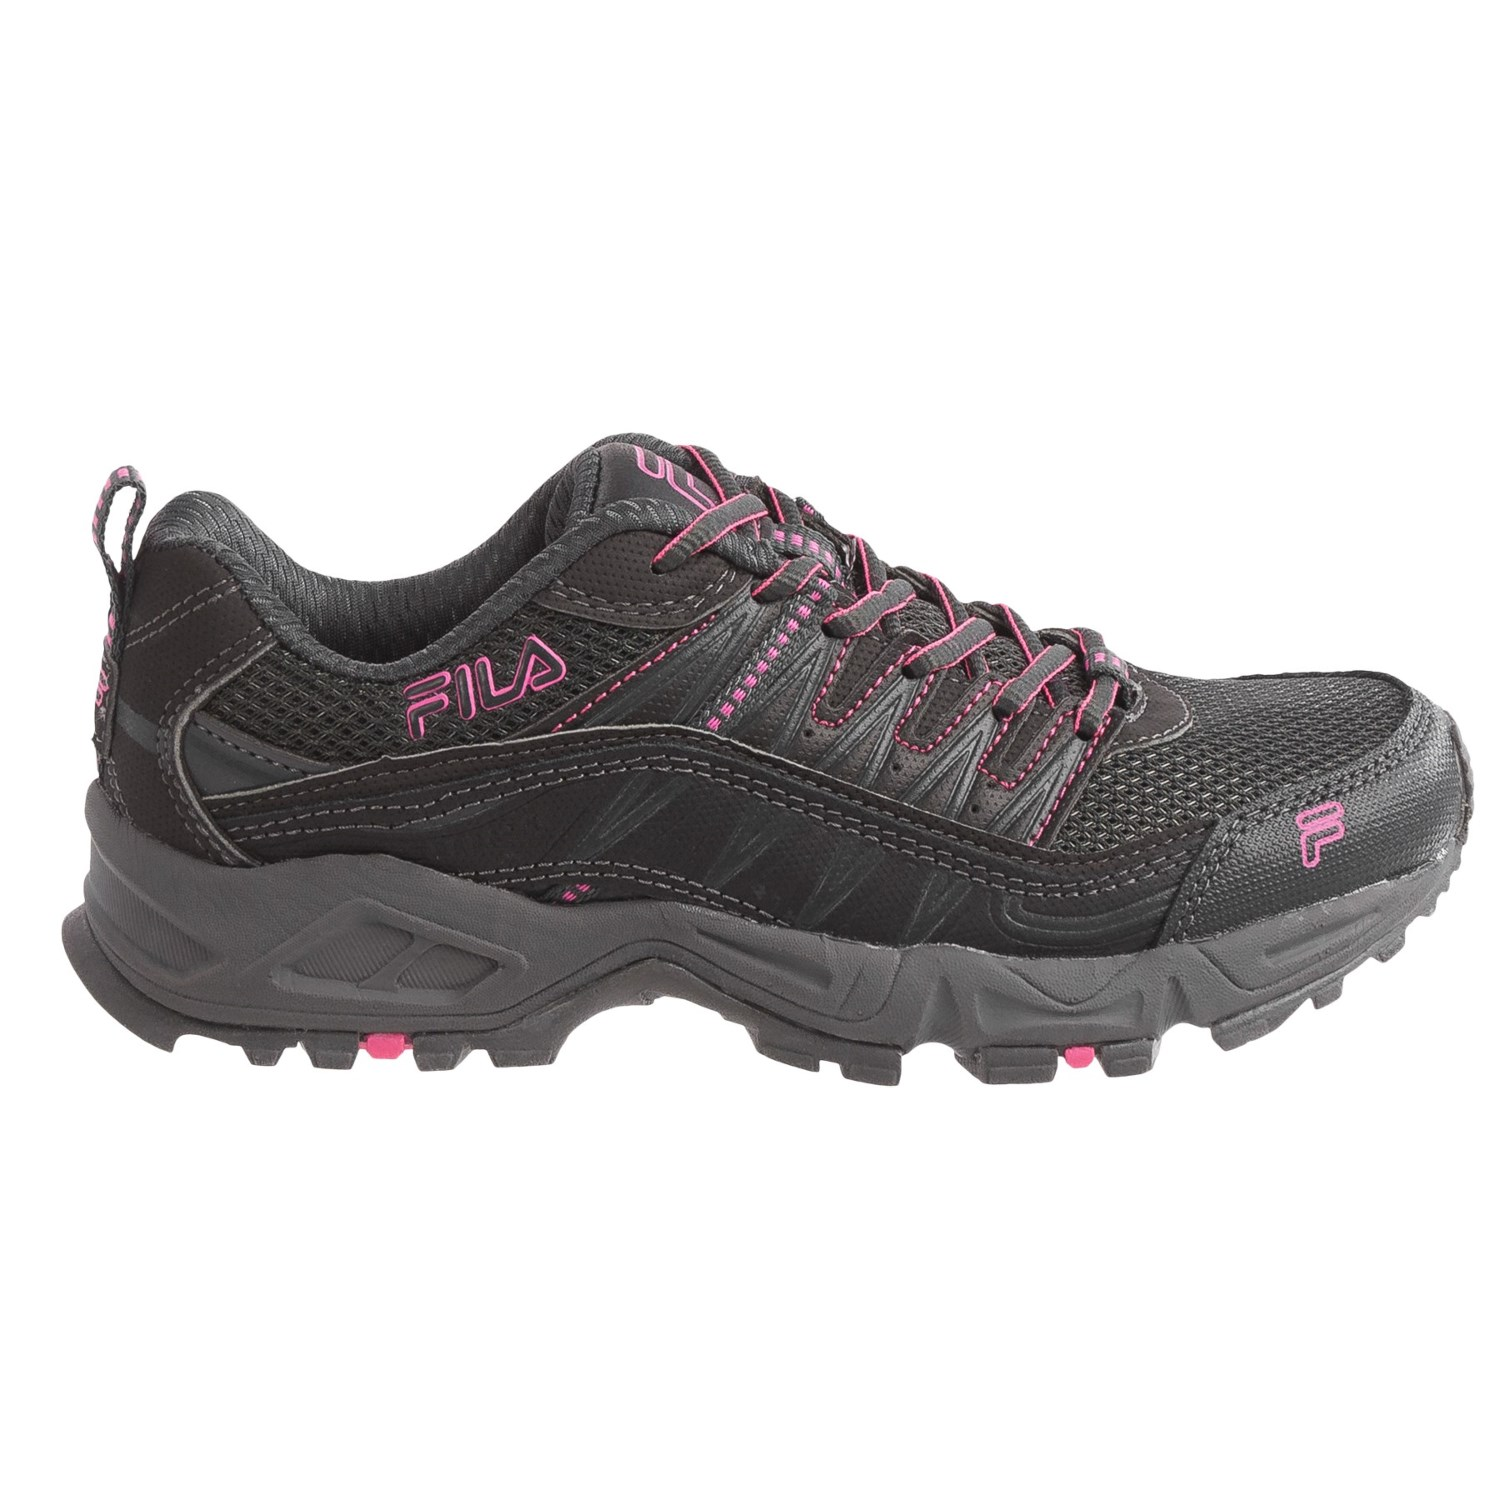 fila at peake trail running shoes for women save 57